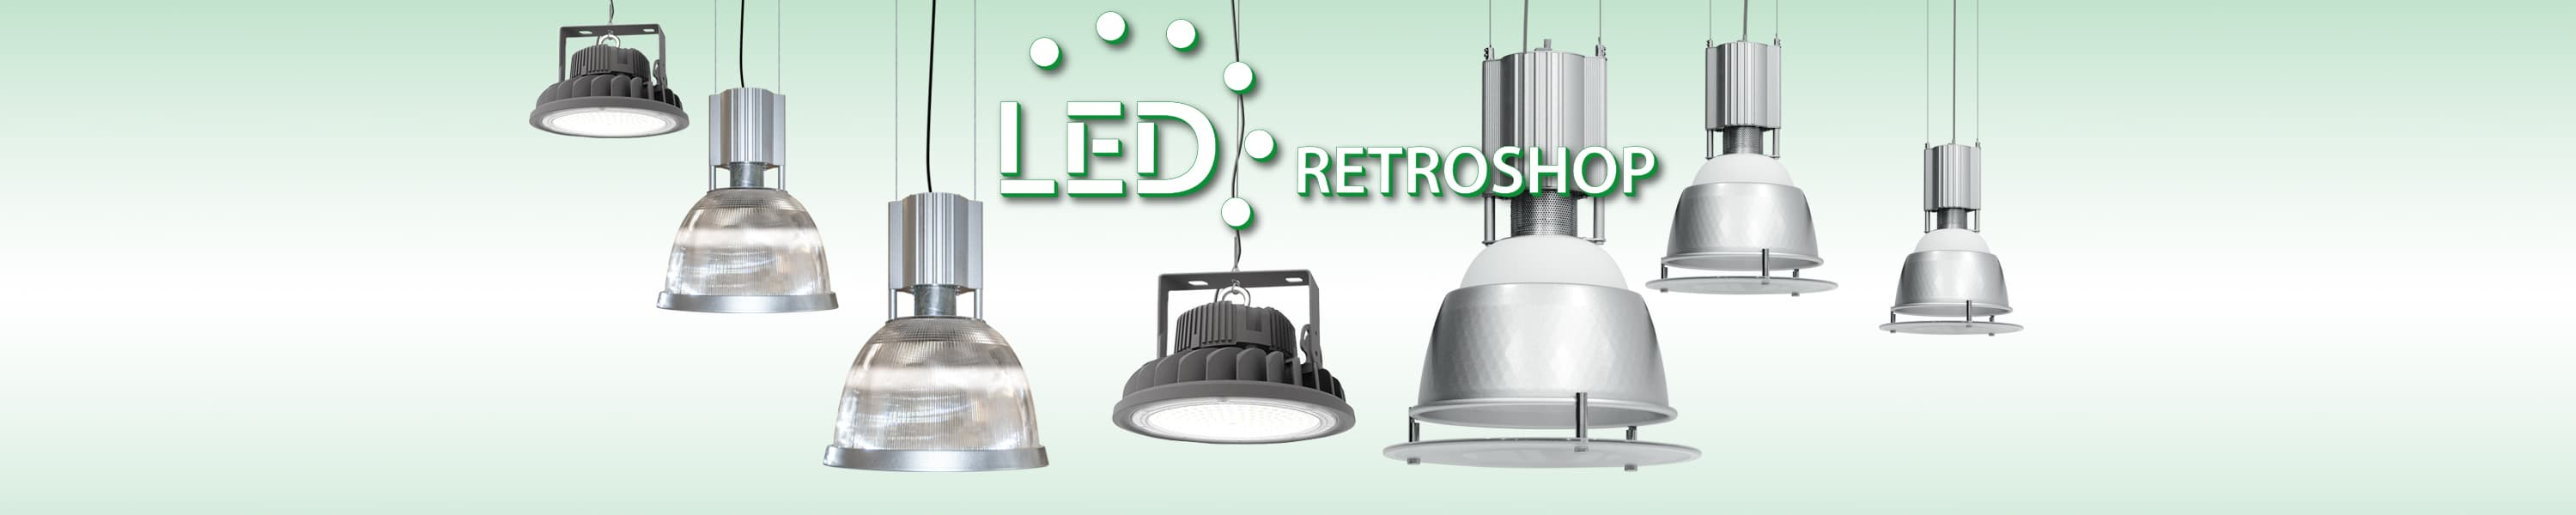 LED-Retroshop-Hallenleuchten-Slider